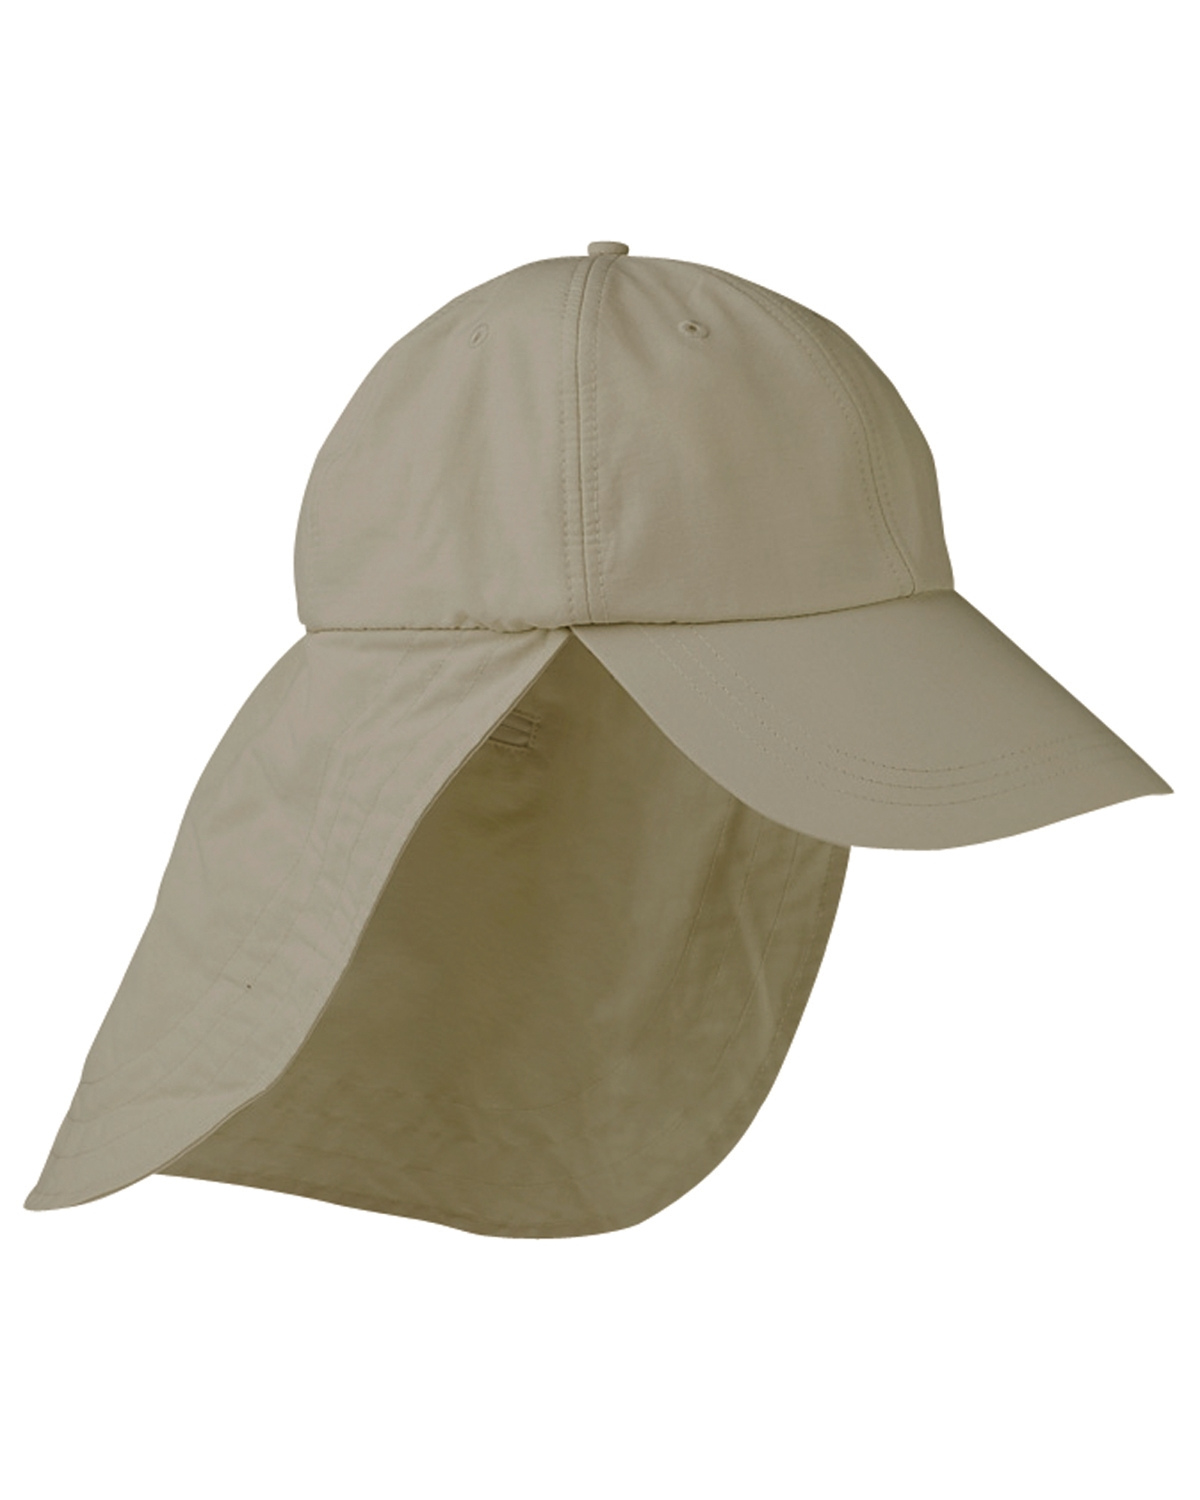 Extreme Outdoor Cap Reduce Sun Glare